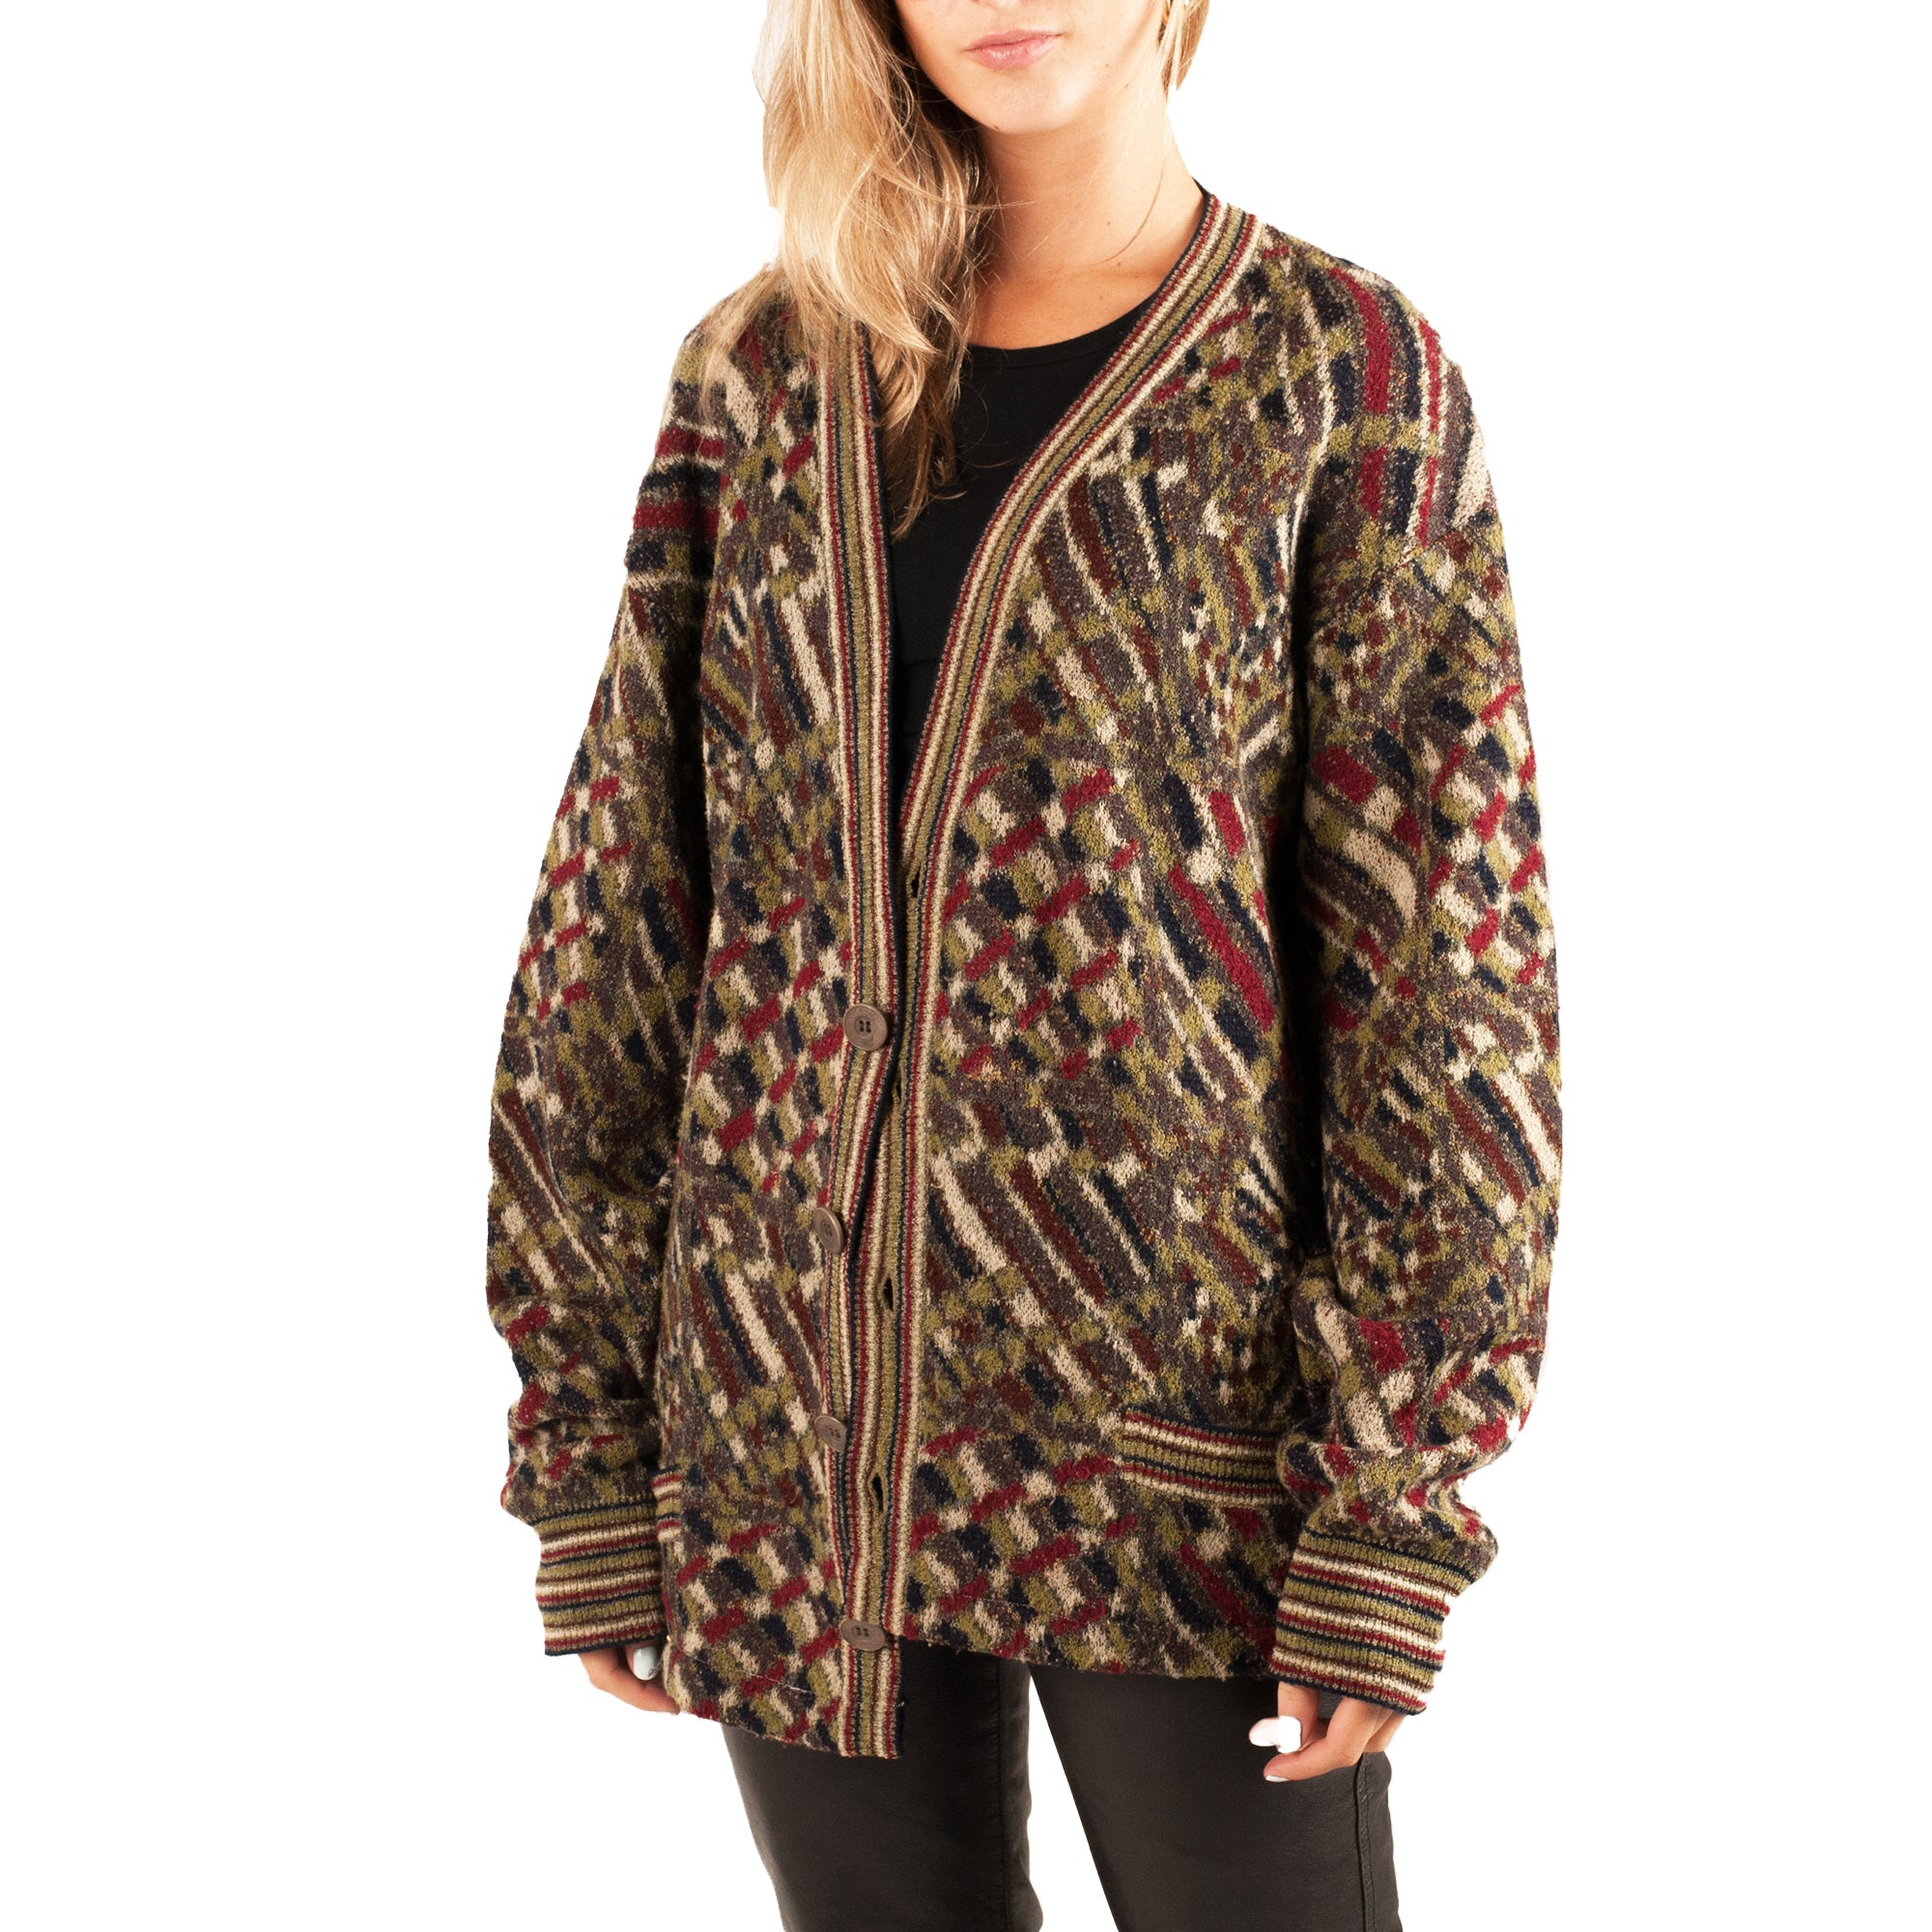 Missoni Sport Cardigan (Multi) UK 8-12